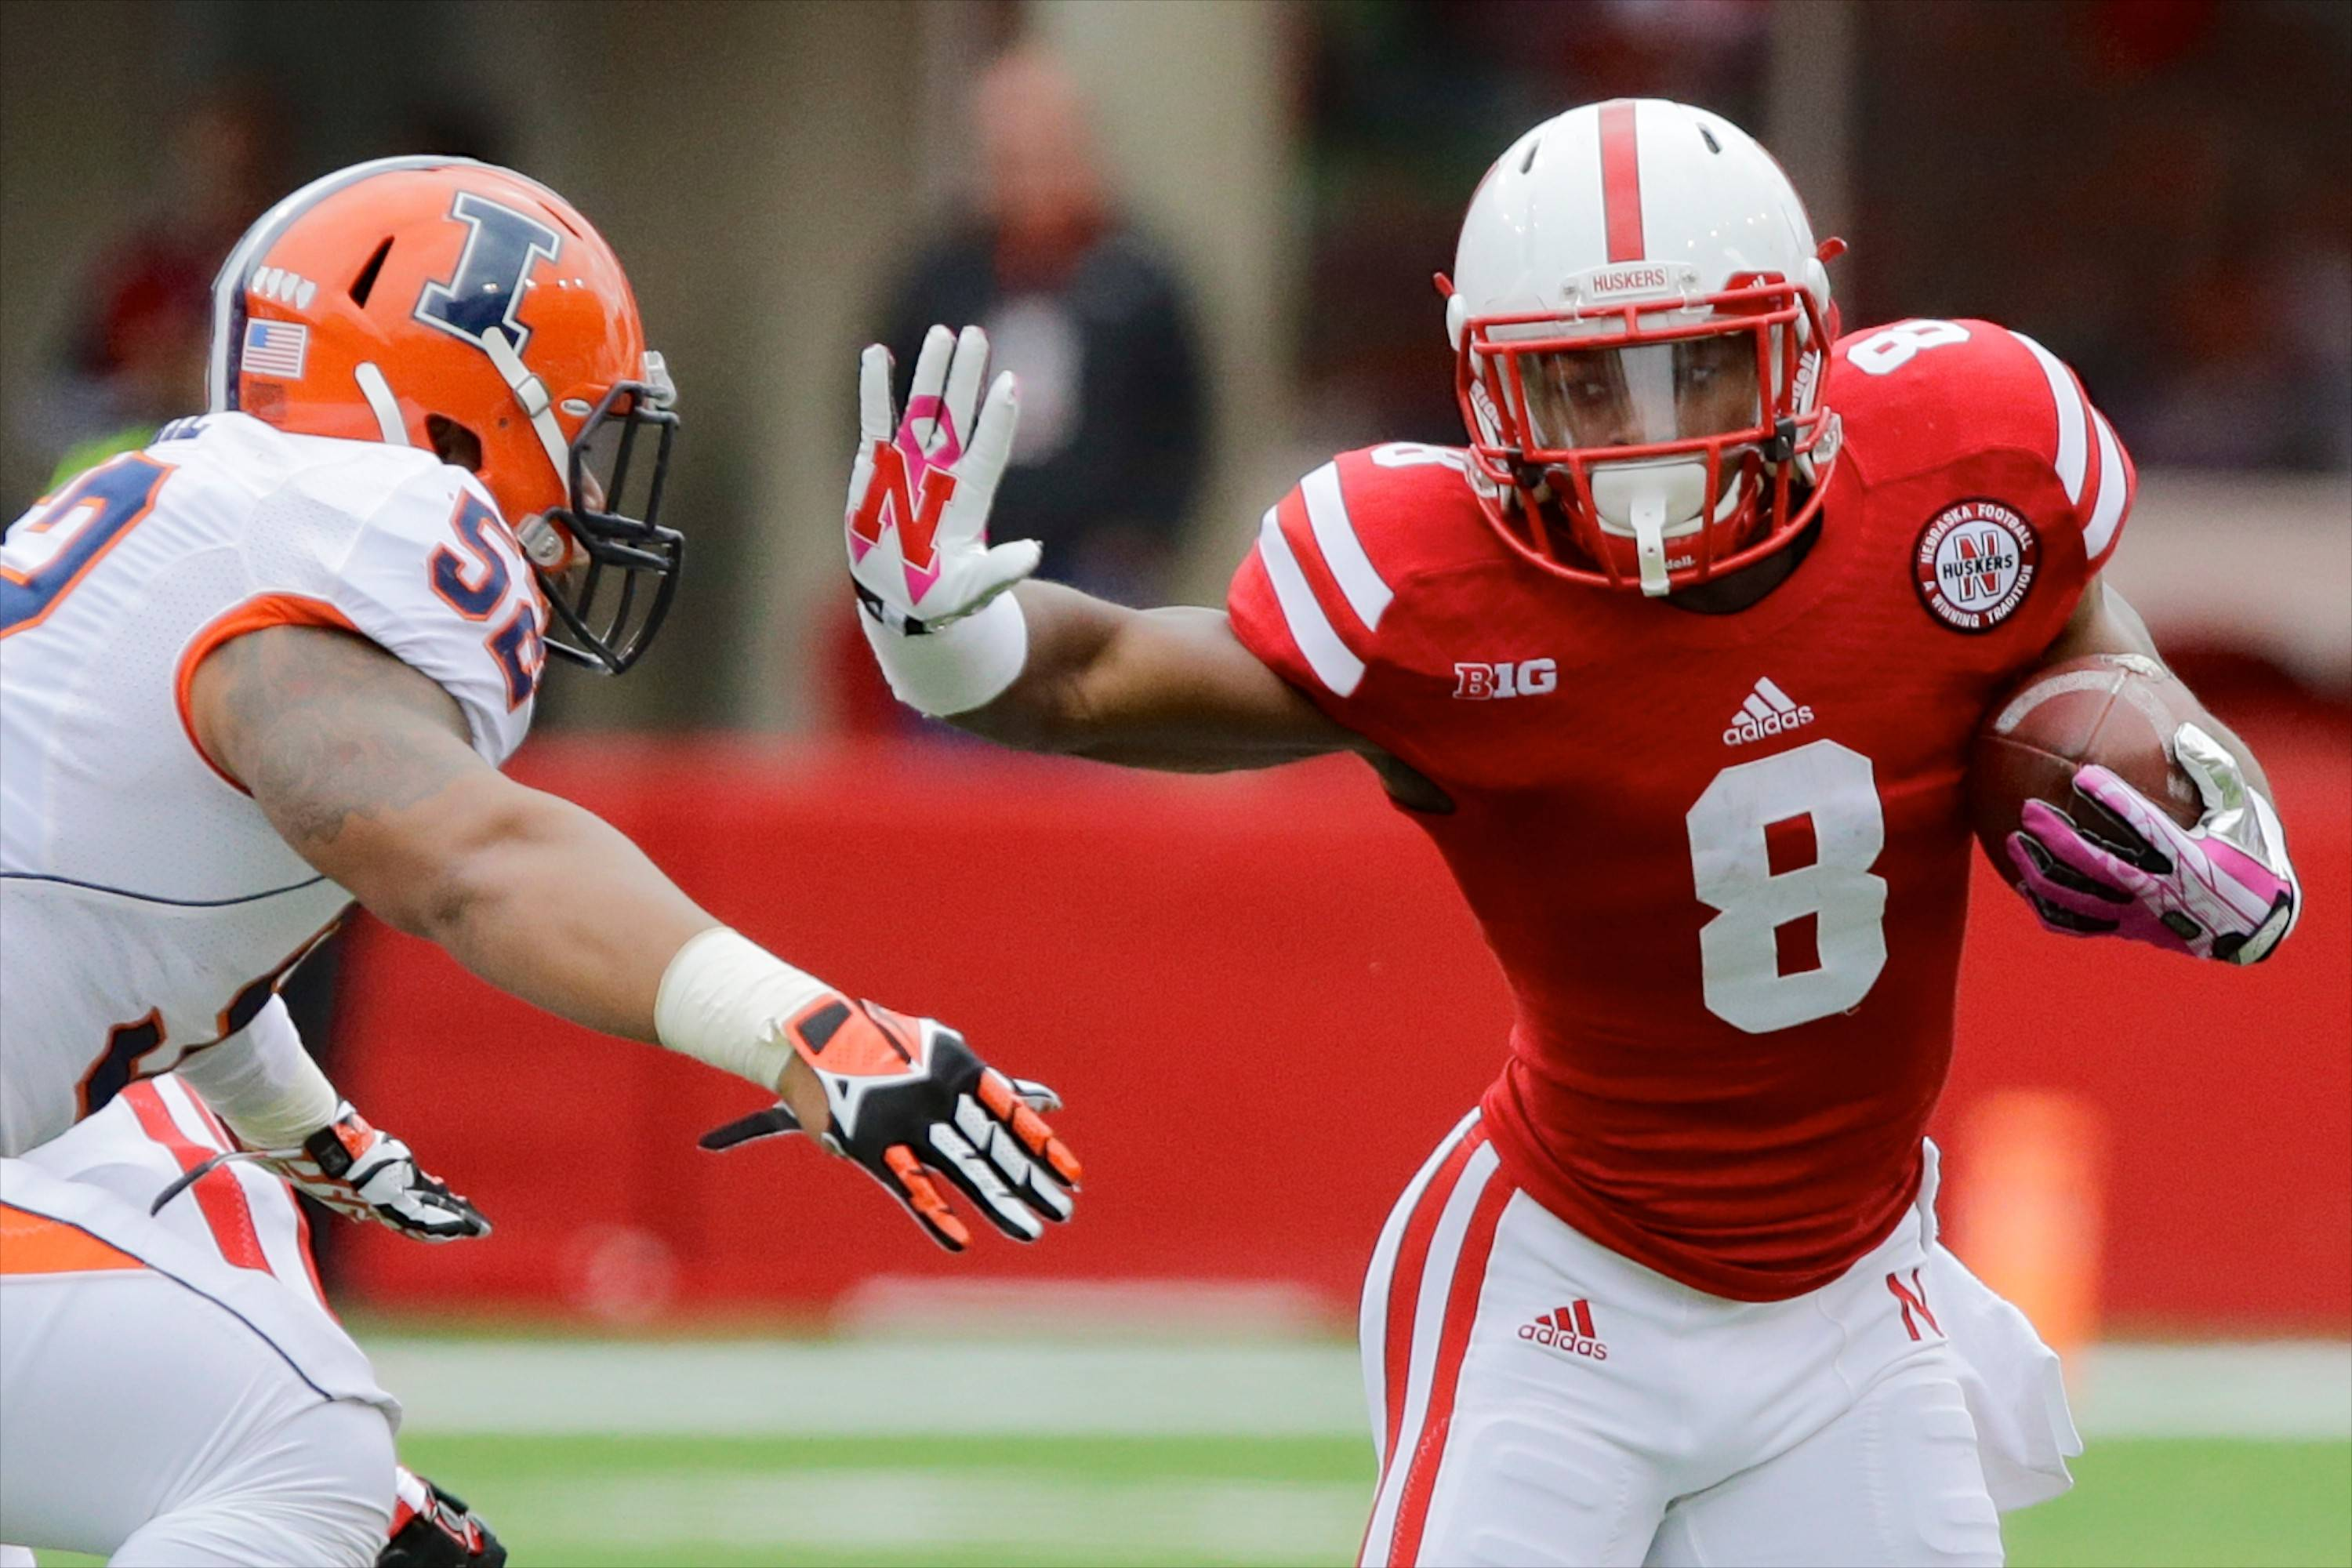 Nebraska running back Ameer Abdullah runs past Illinois linebacker T.J. Neal in the Oct. 5 game last season. Abdullah ran for a career-high 225 yards and two touchdowns in Nebraska's 39-19 win.